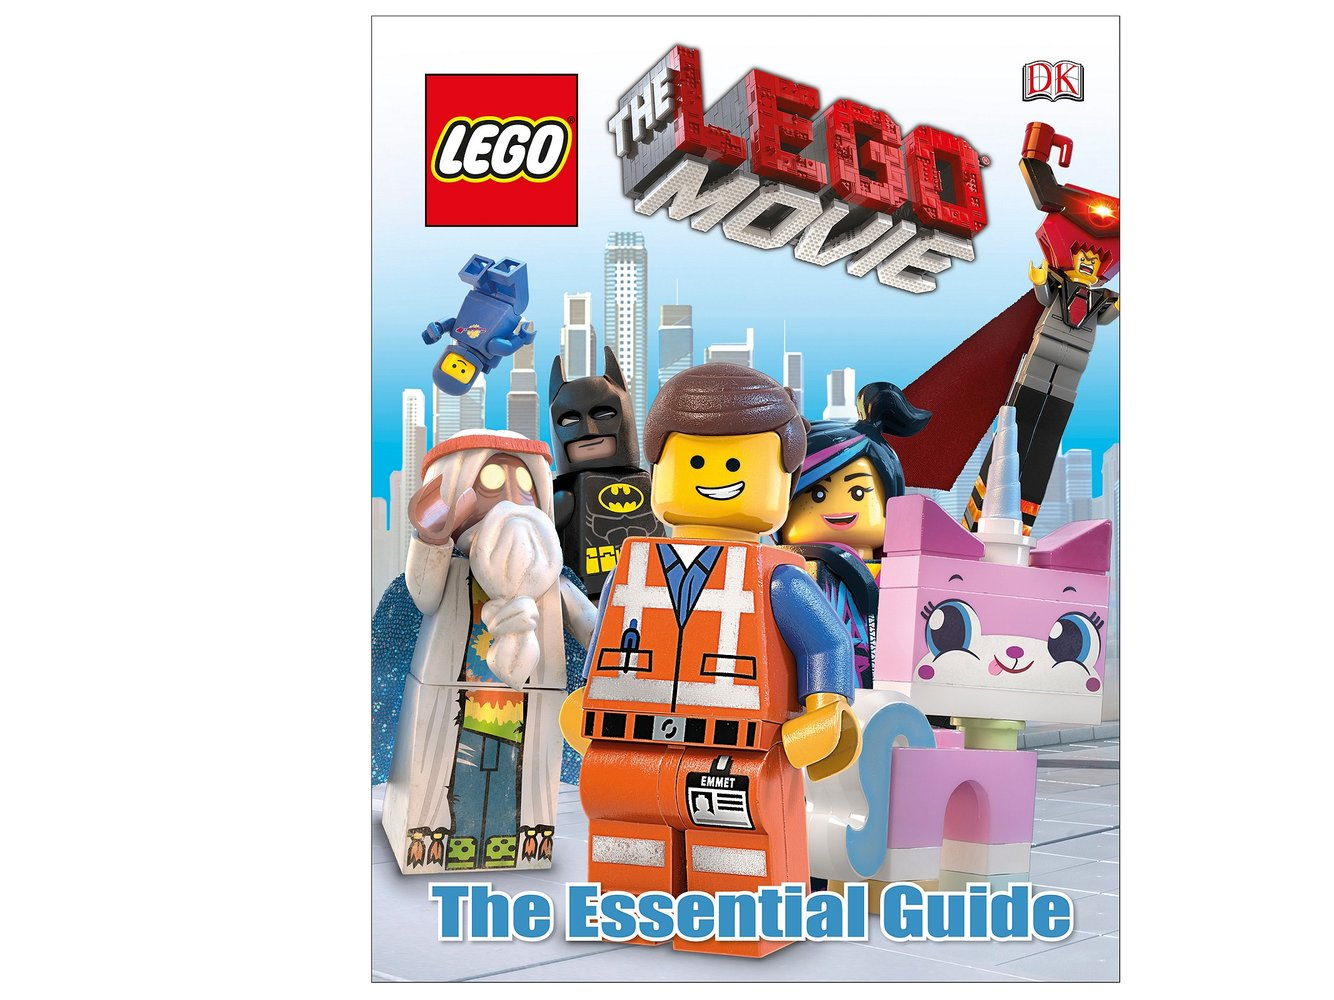 The LEGO Movie - The Essential Guide